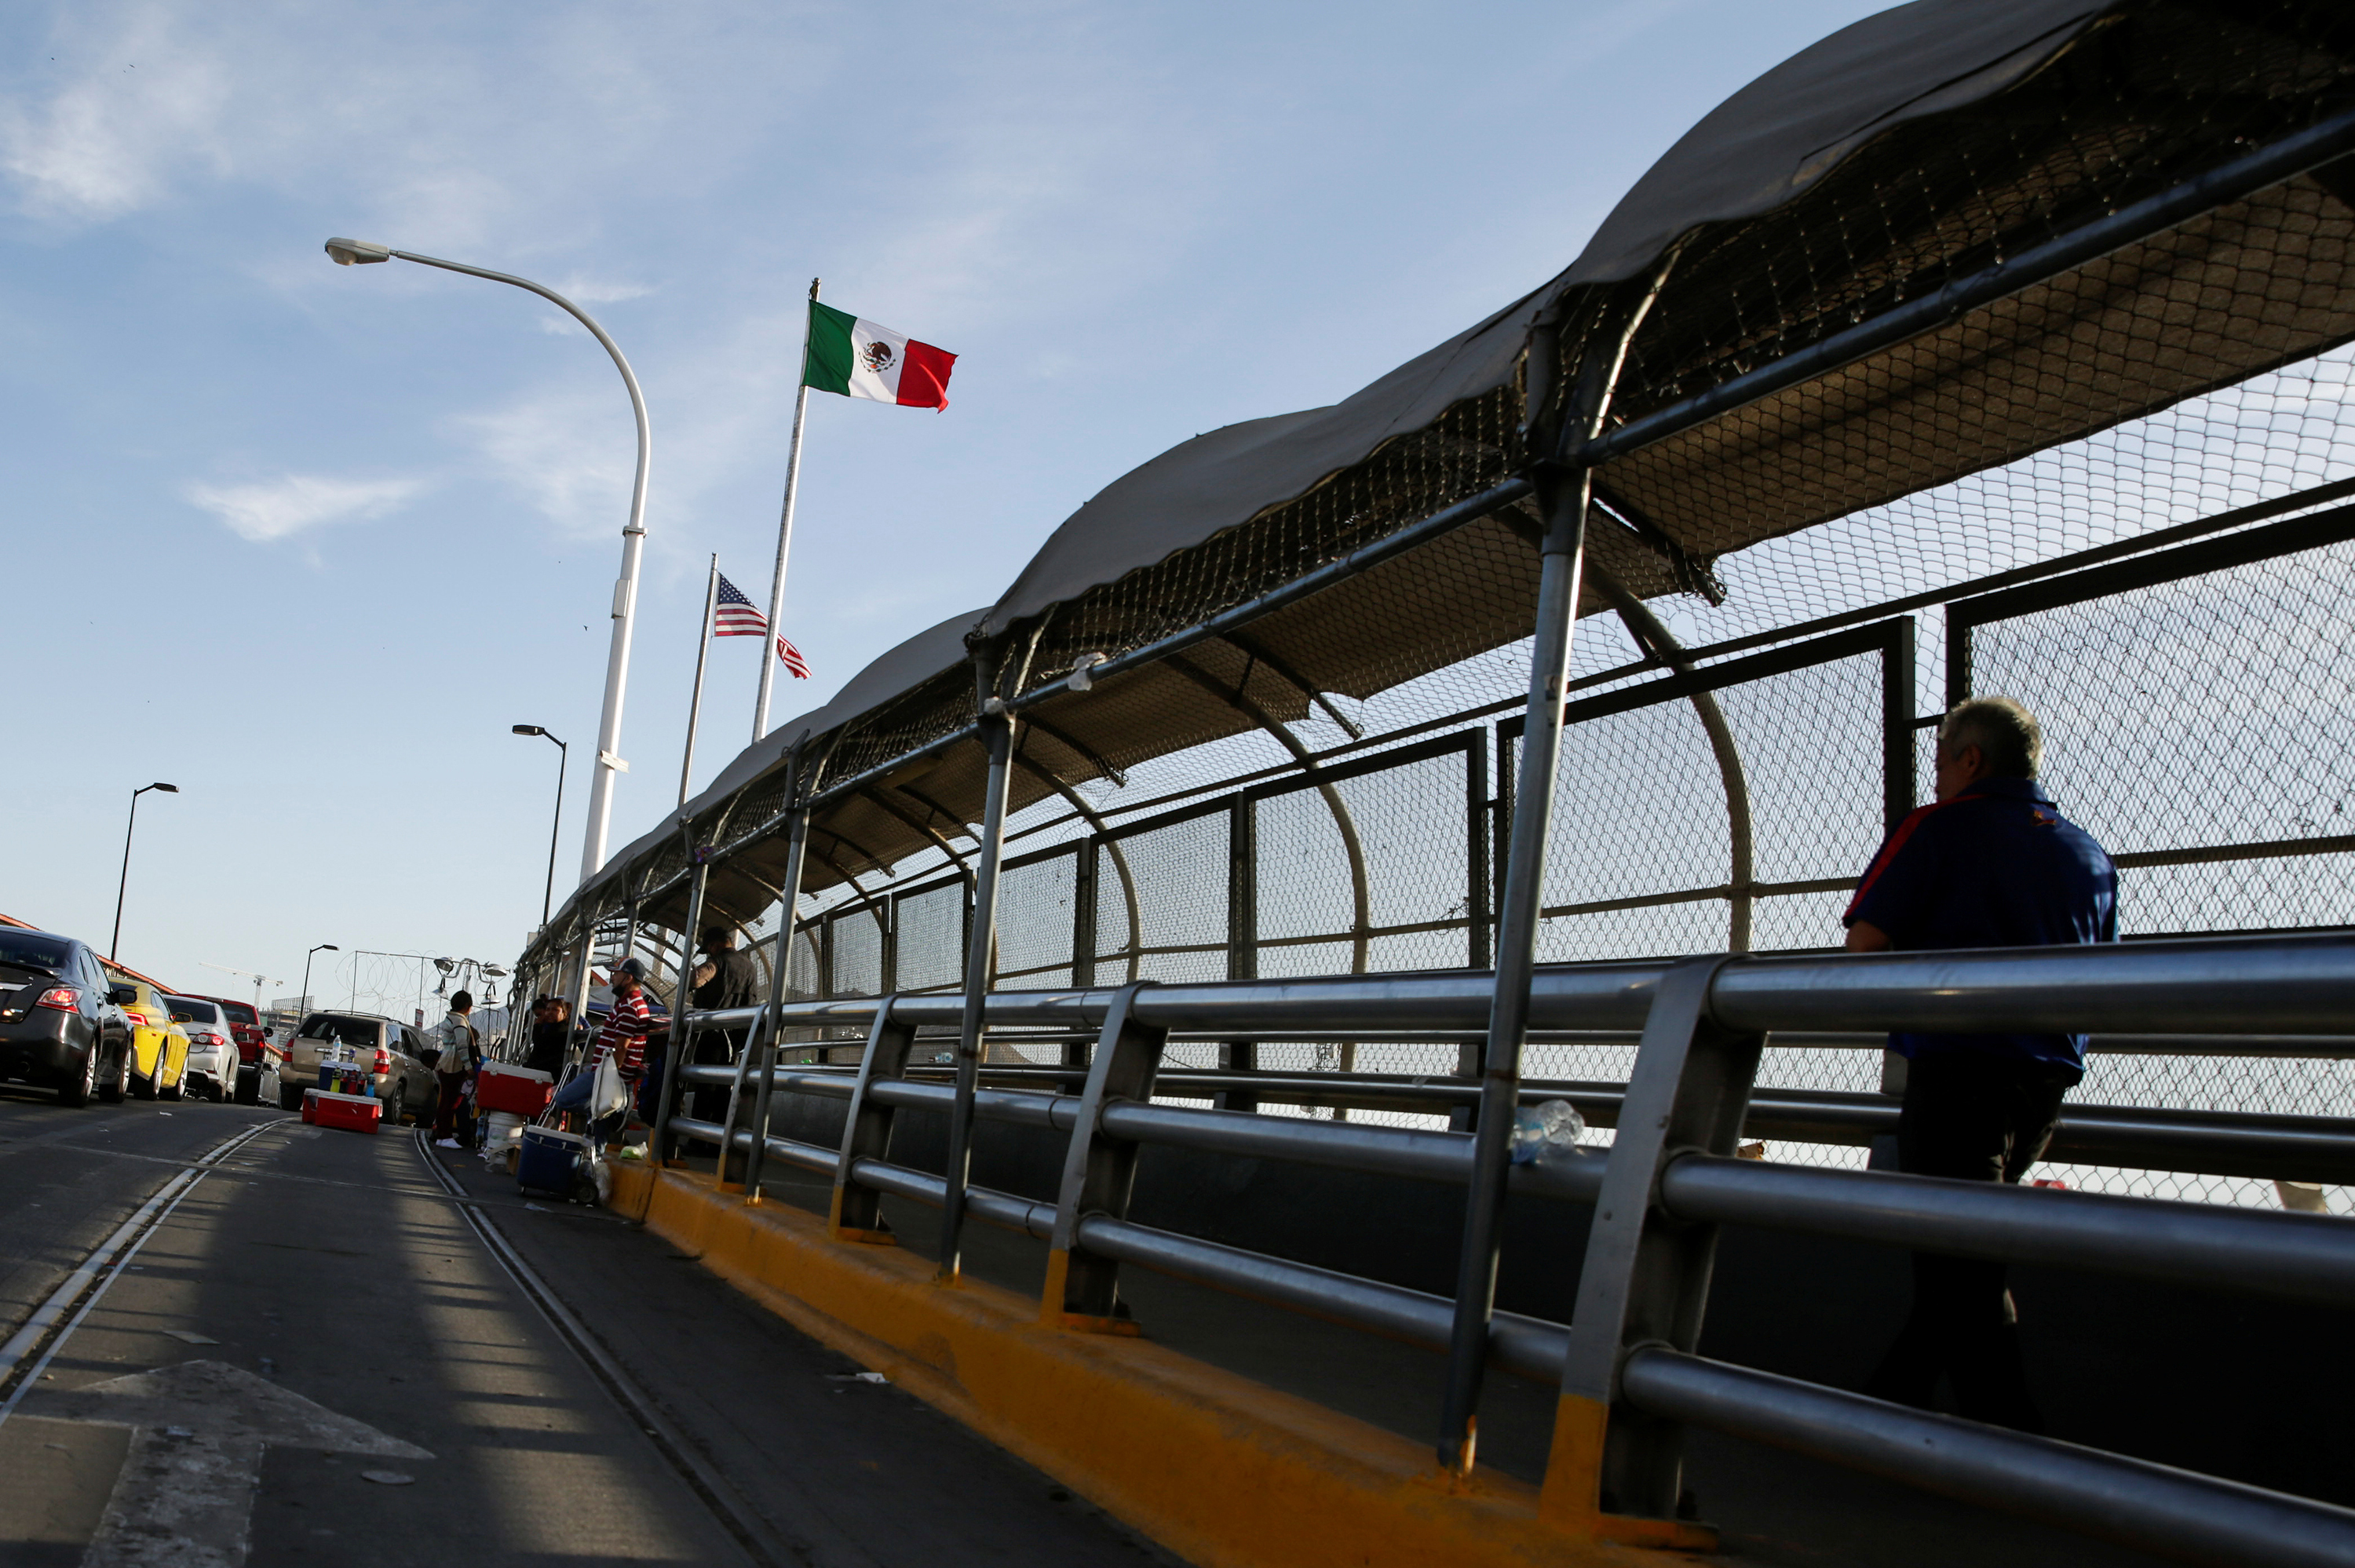 A man crosses the Paso del Norte border bridge towards El Paso, Texas, as seen from Ciudad Juarez, Mexico on July 1. Since March, U.S. immigration officials have turned away tens of thousands of migrants, including asylum seekers and unaccompanied children.